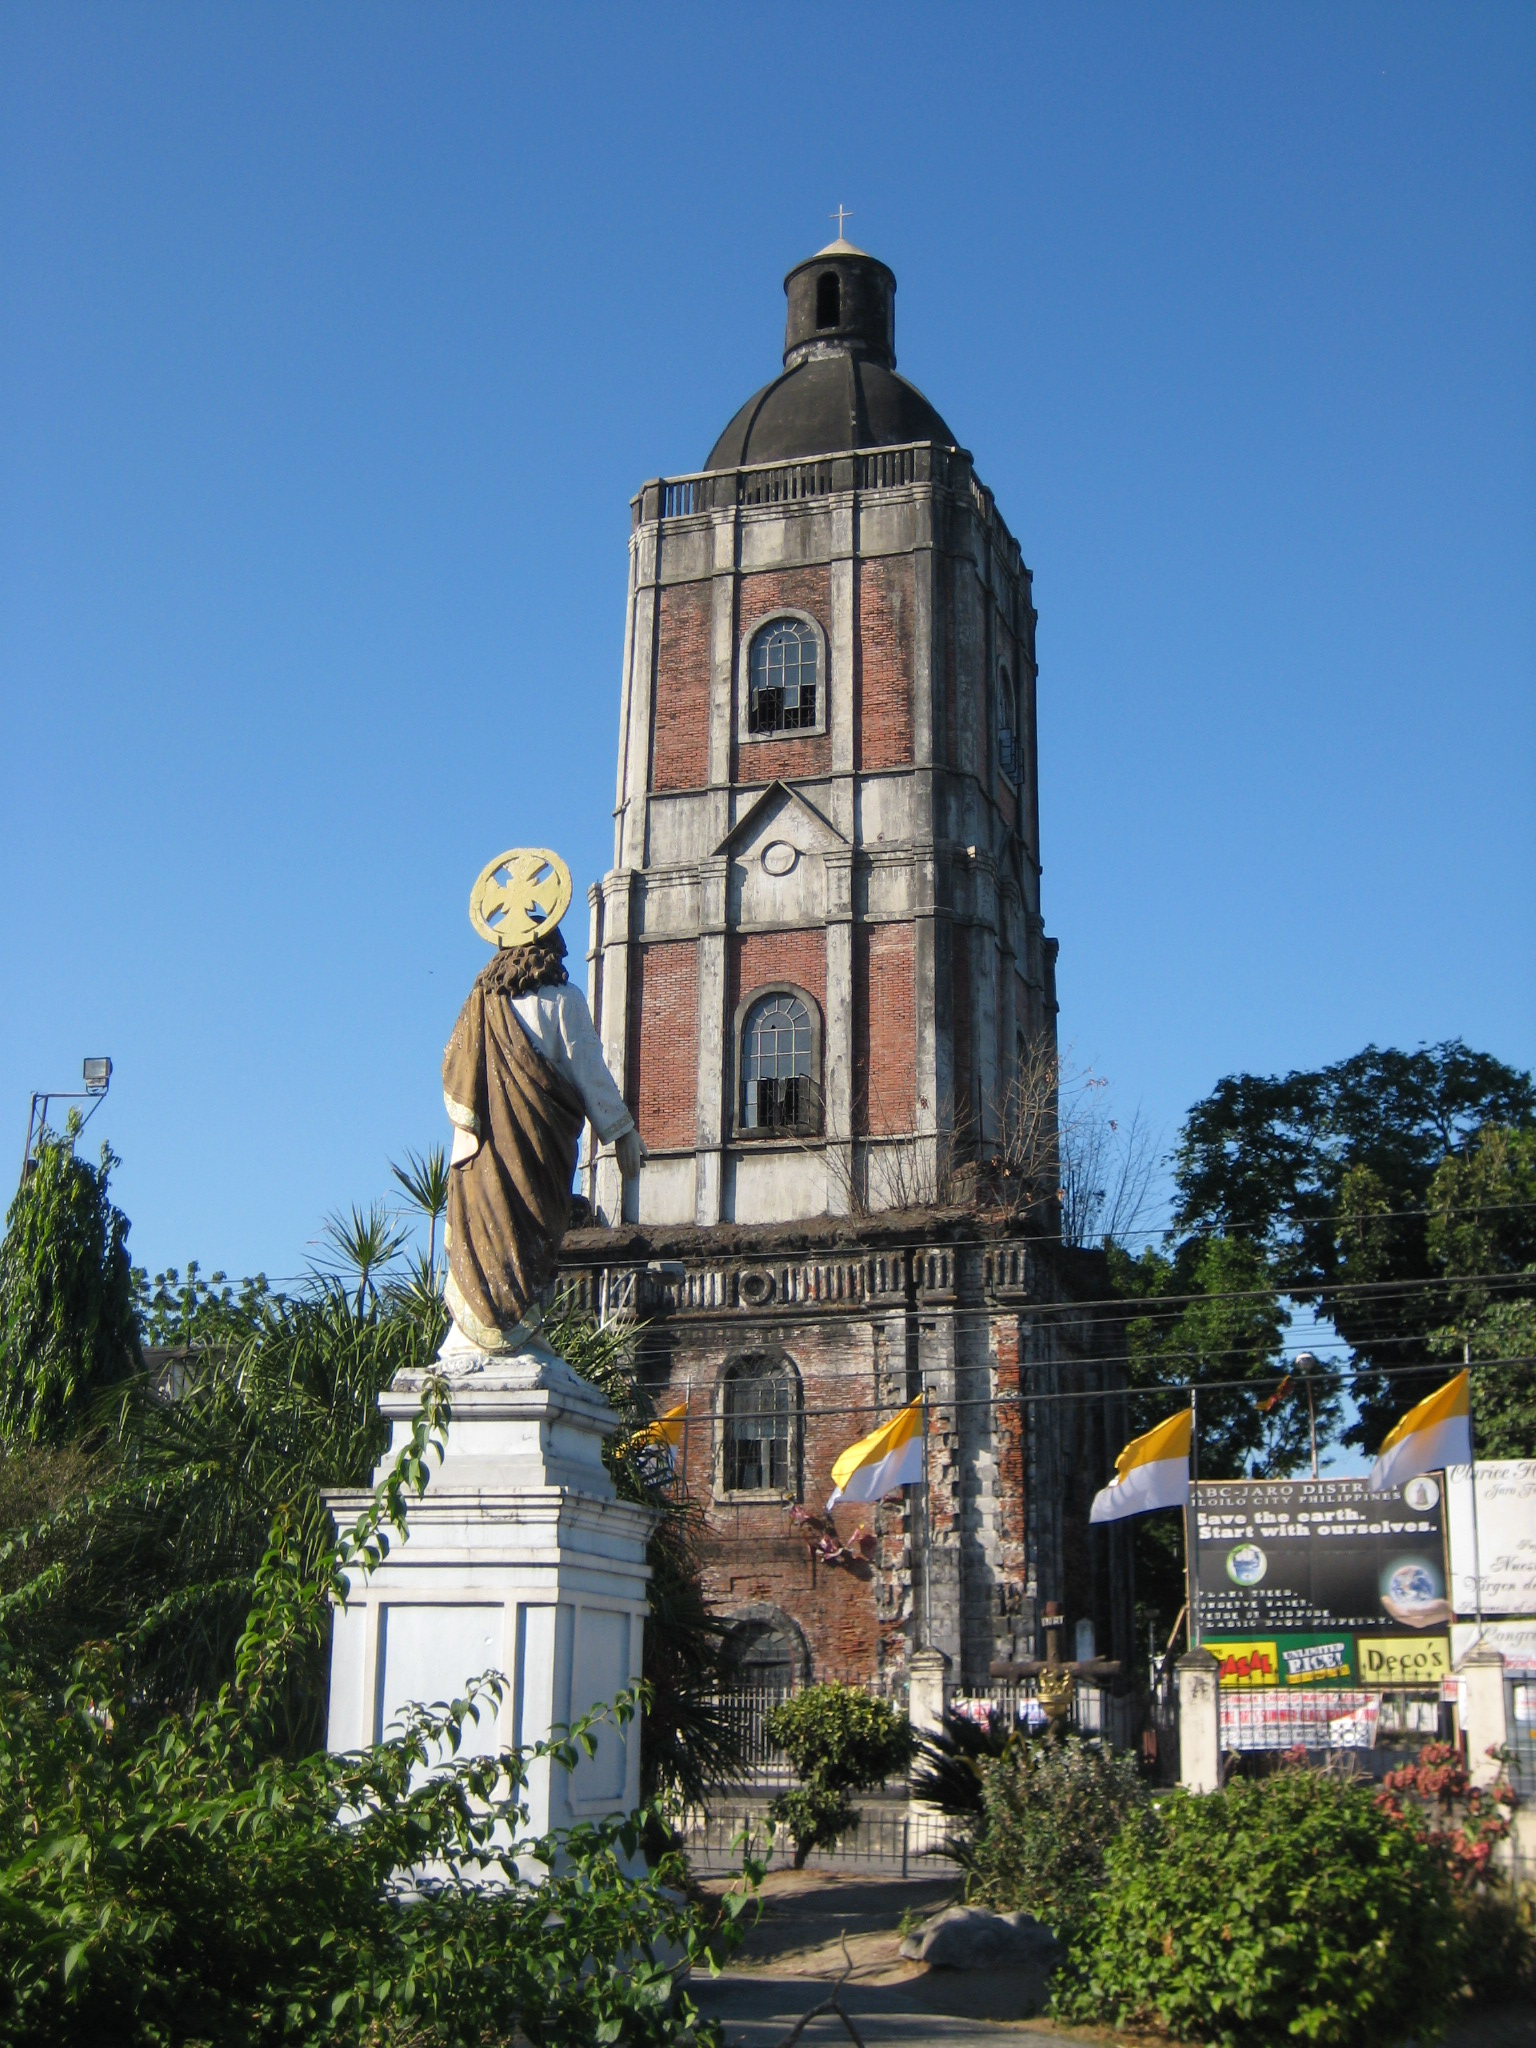 One of the few free standing bell towers in the Philippine islands.